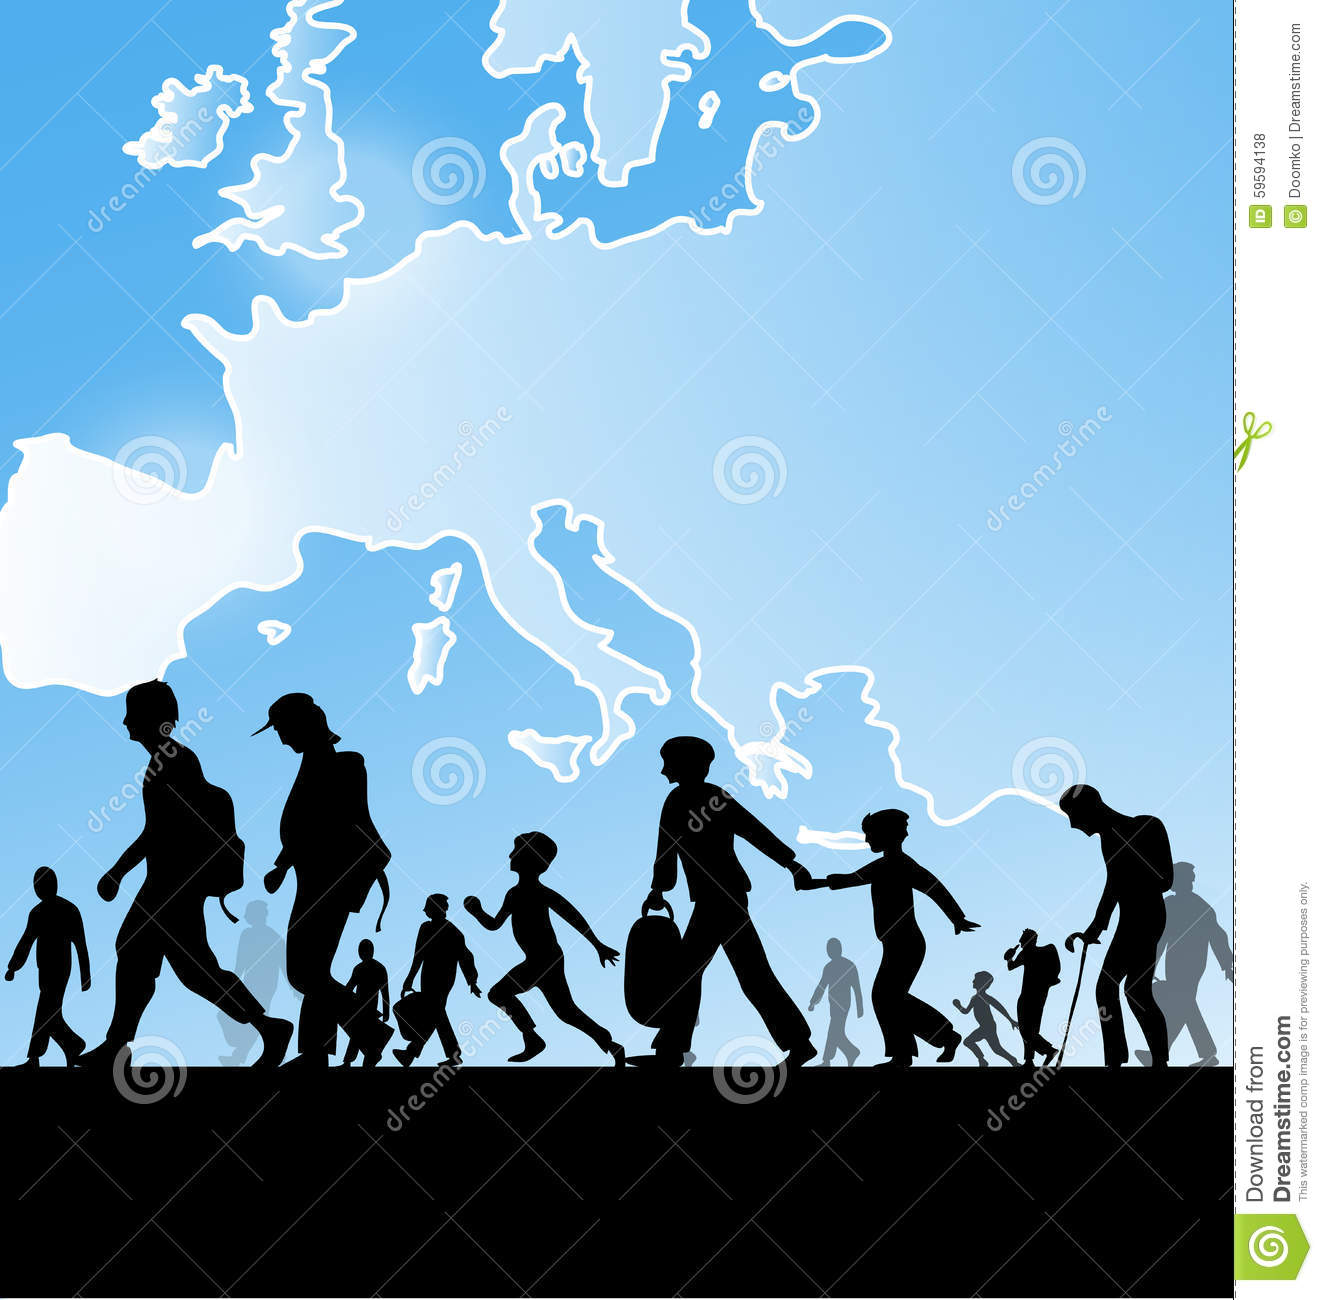 immigration and migration Read these insightful origins articles for more on migration around the world:  global migration and the americas us immigration policy and operation.